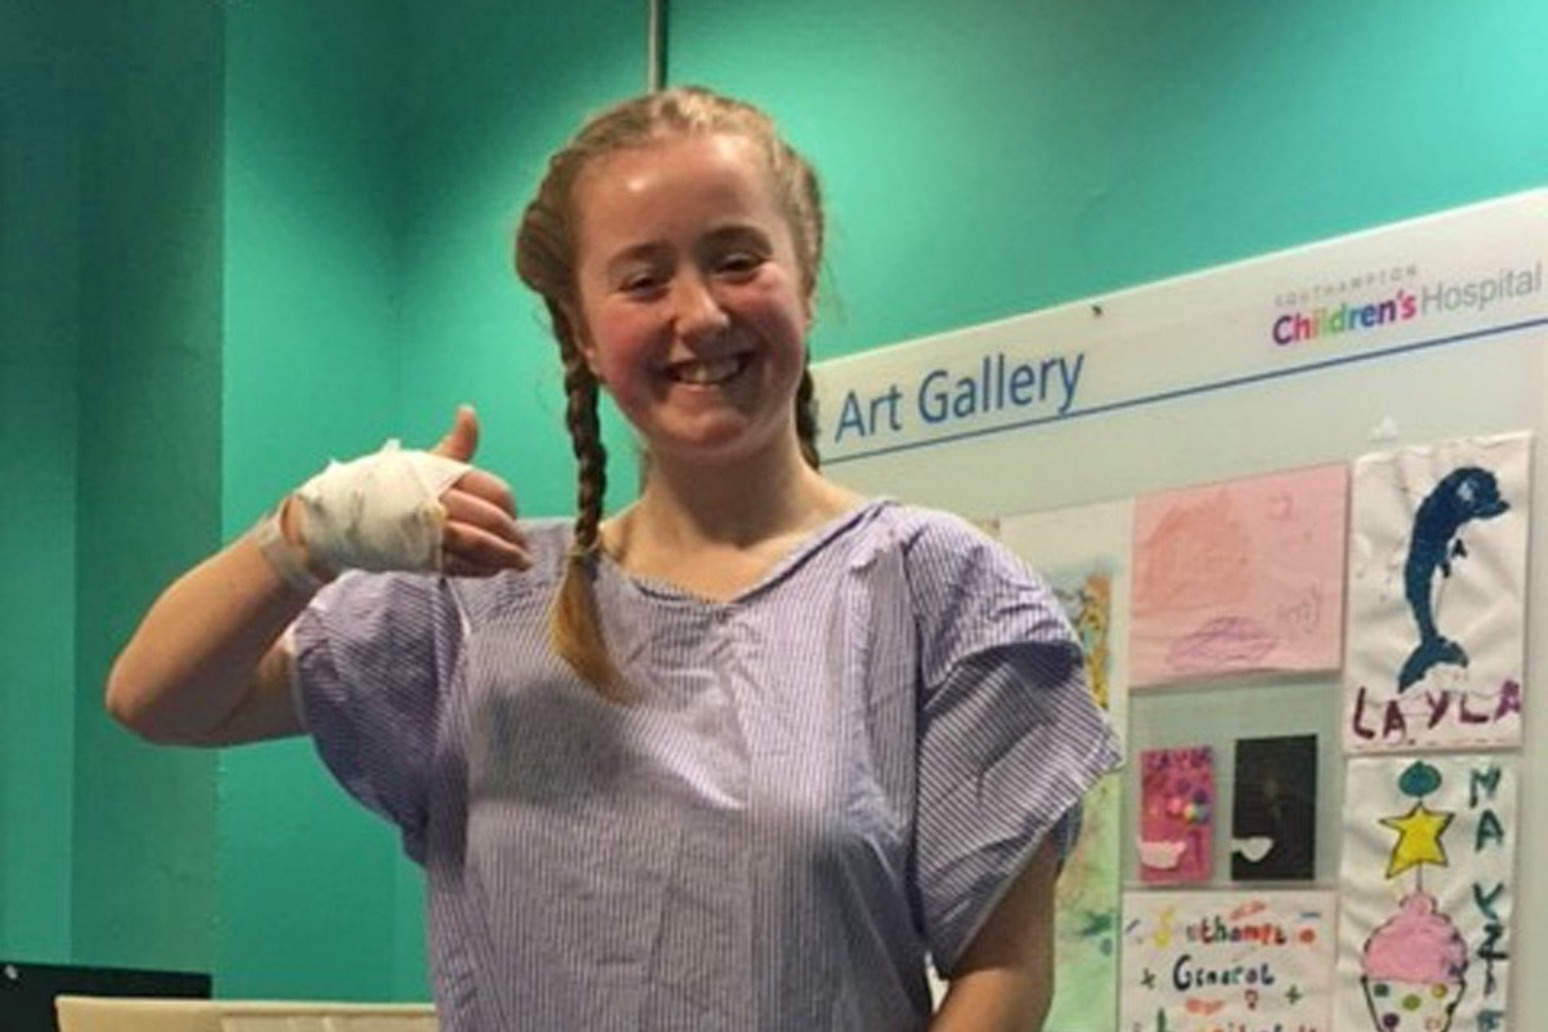 Youngest London Marathon runner raising funds for medics who saved her life